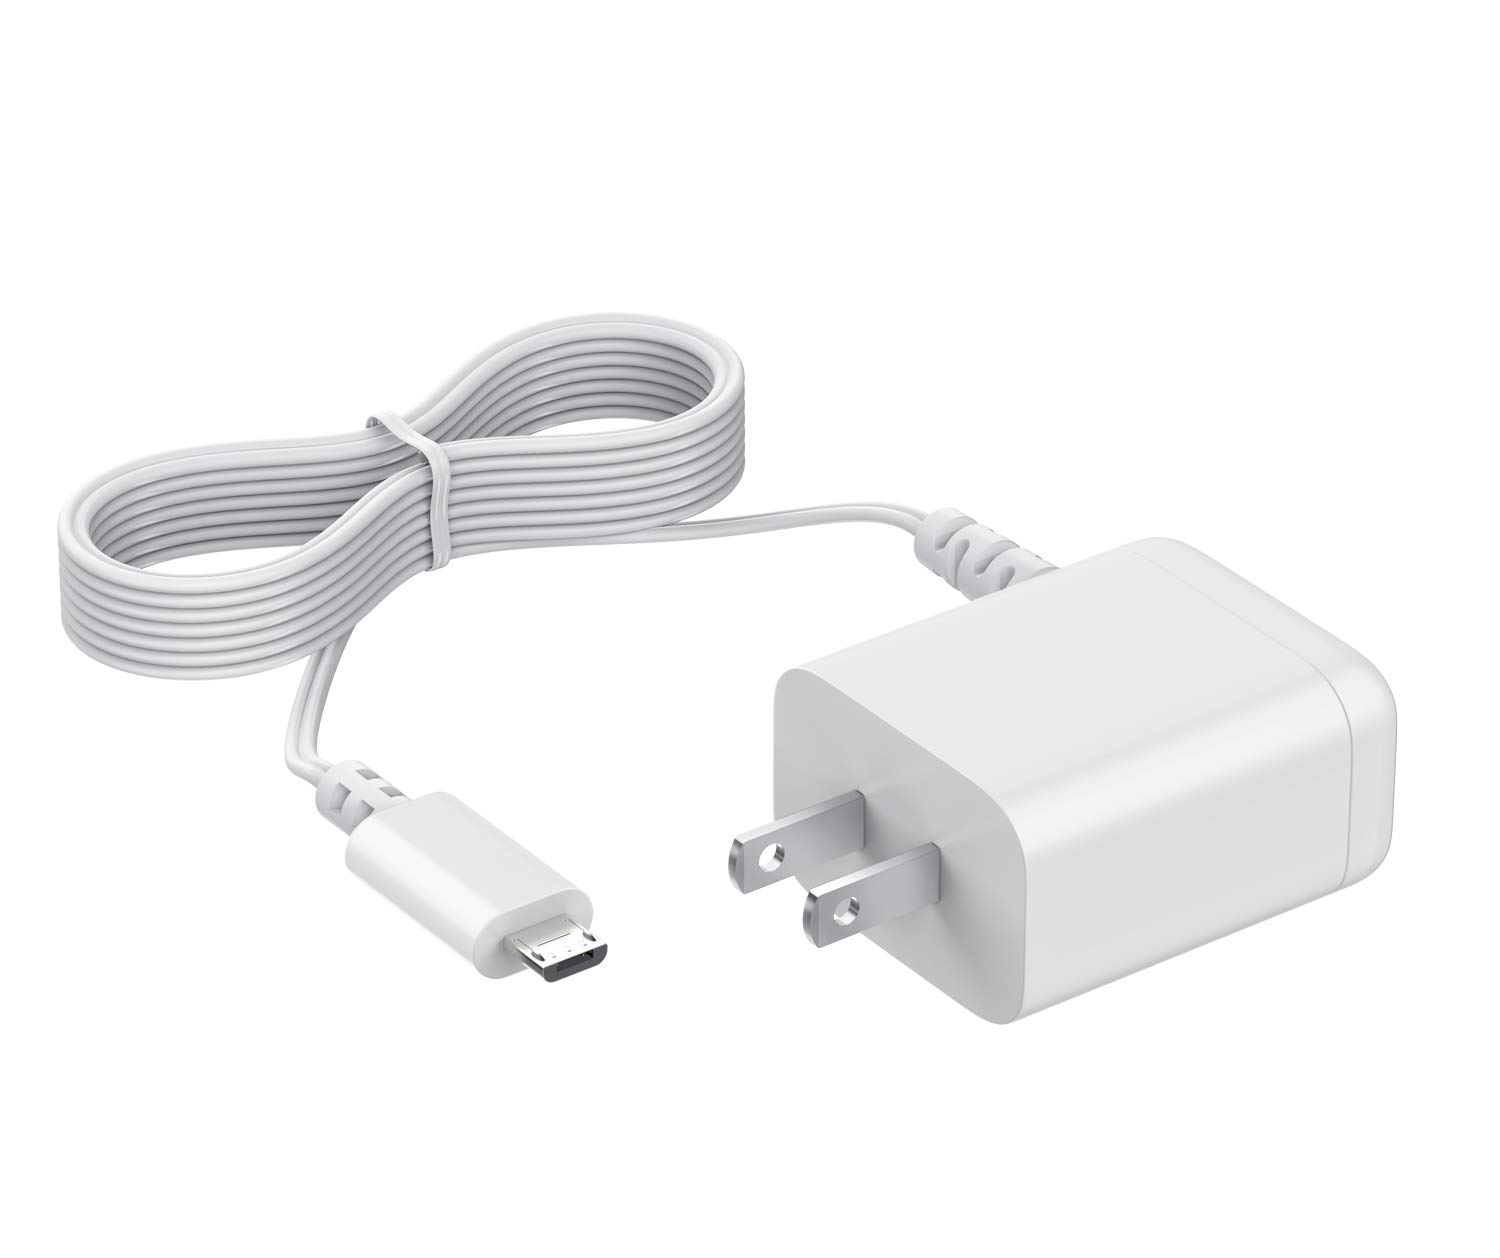 USB Cable Compatible with  Motorola MBP48 MBP48PU Parent/'s Unit Baby Monitor